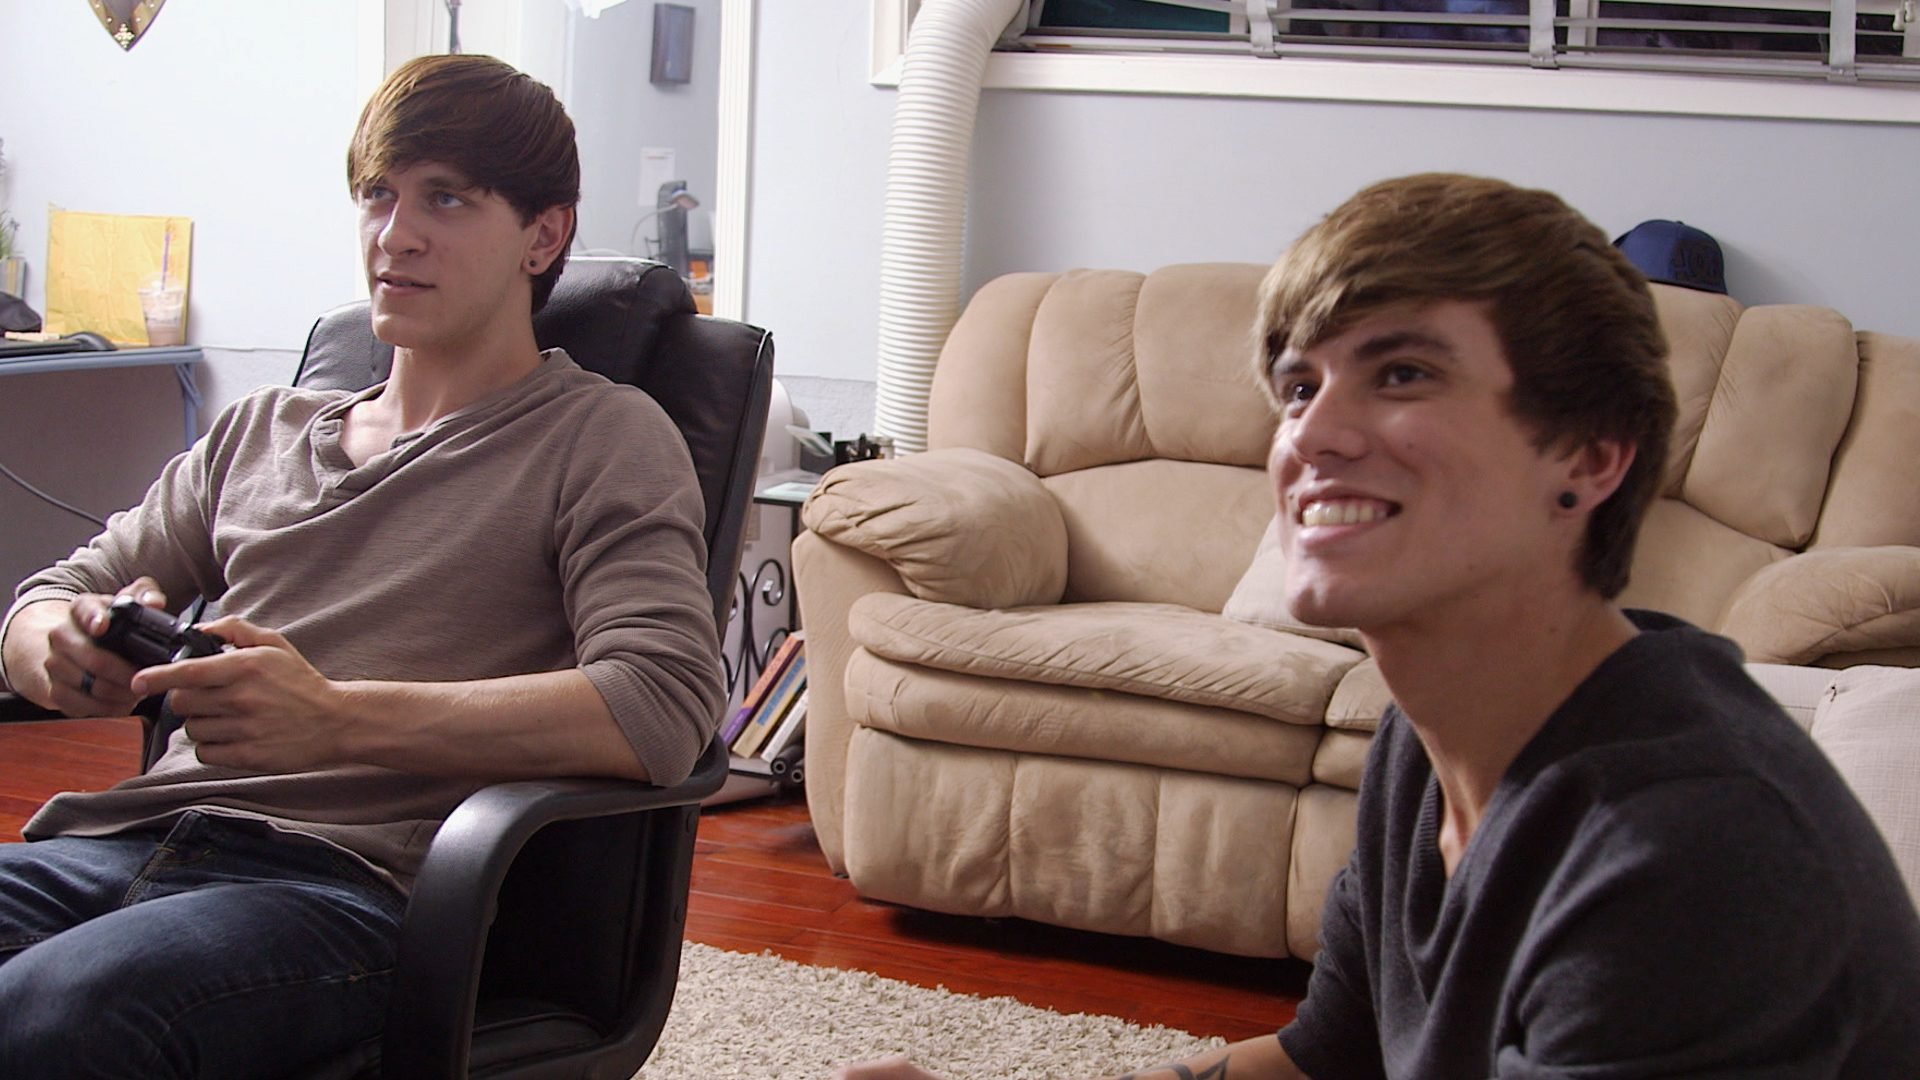 Nick, Tony, Playing Video Games, Happily Ever Avatar, Stage 13 Original, stage13network